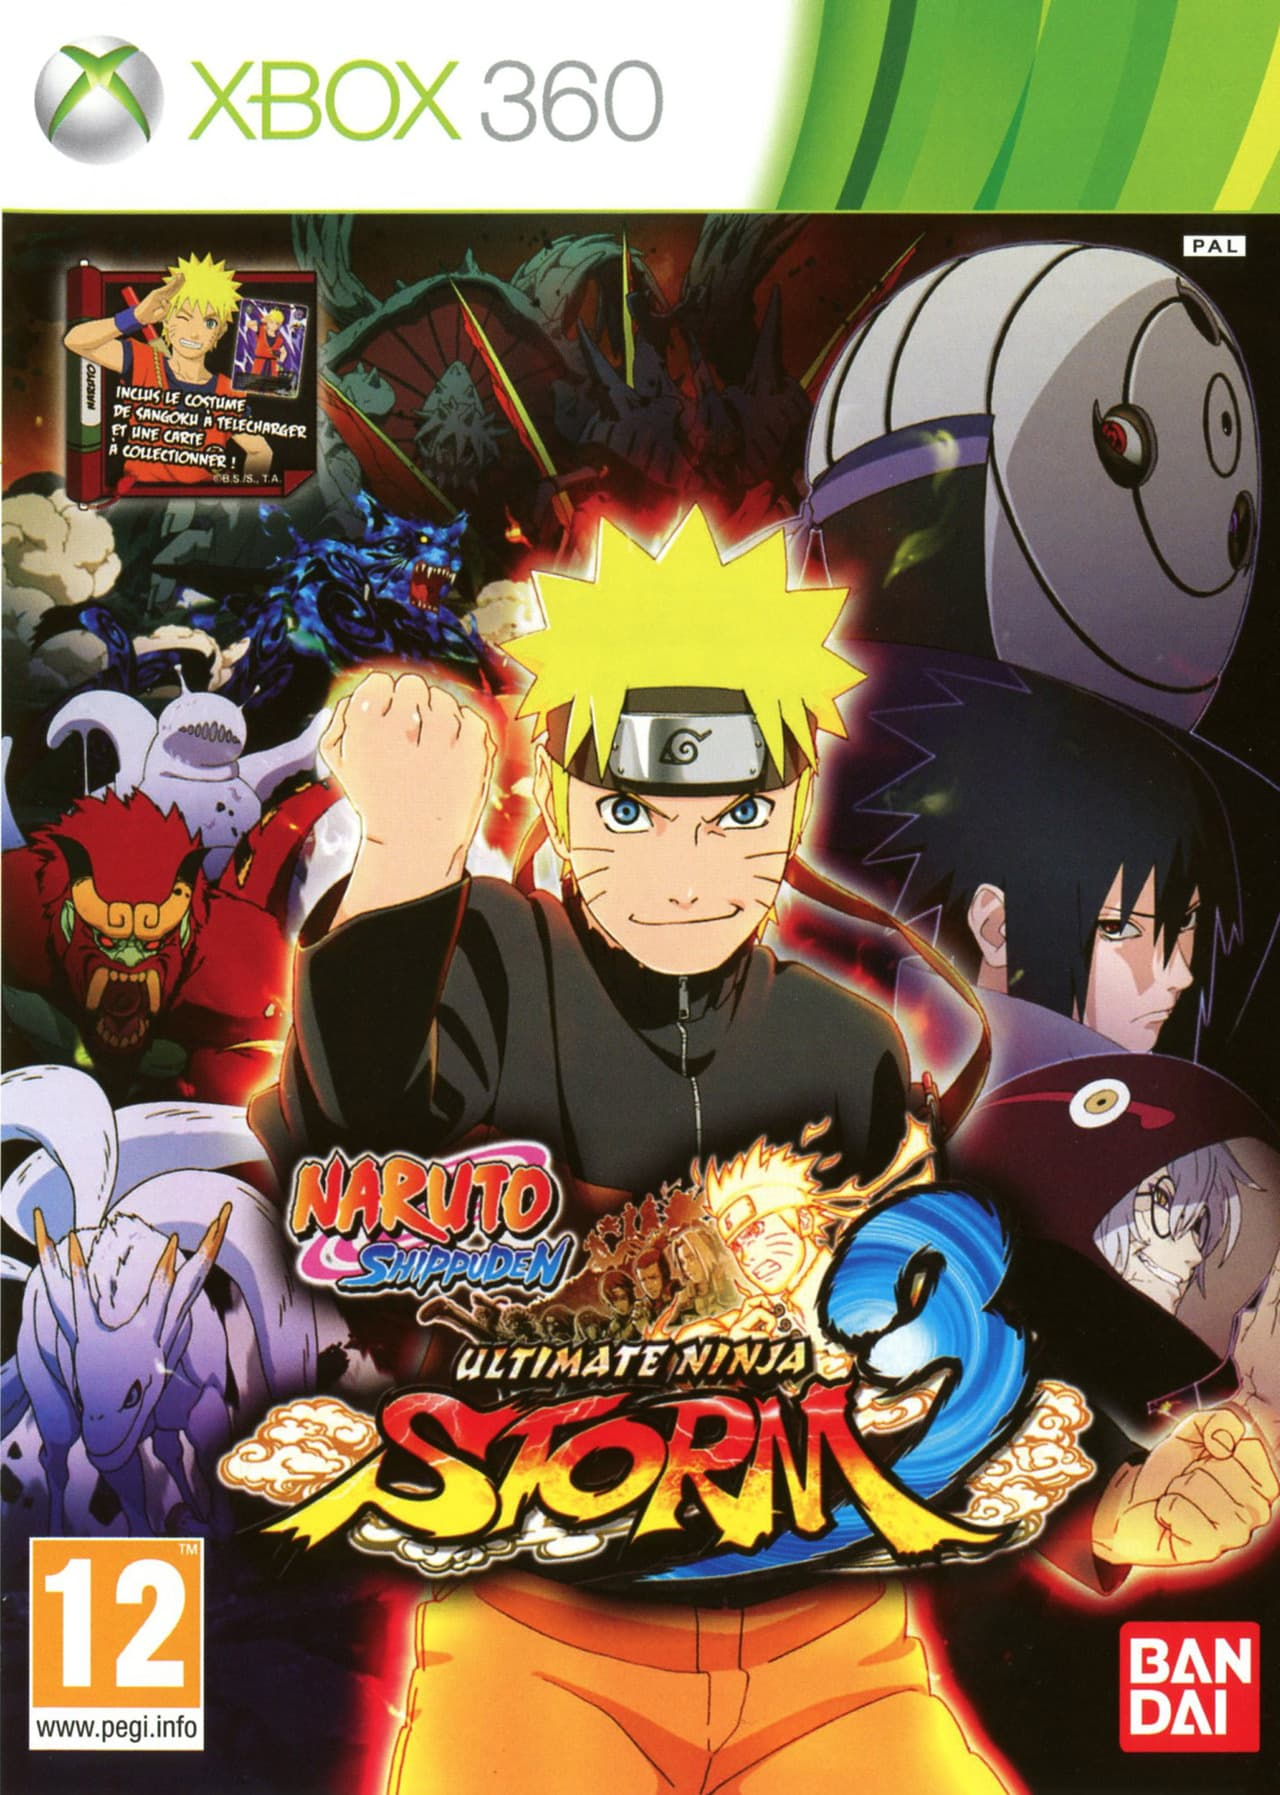 Jaquette Naruto Shippuden : Ultimate Ninja Storm 3